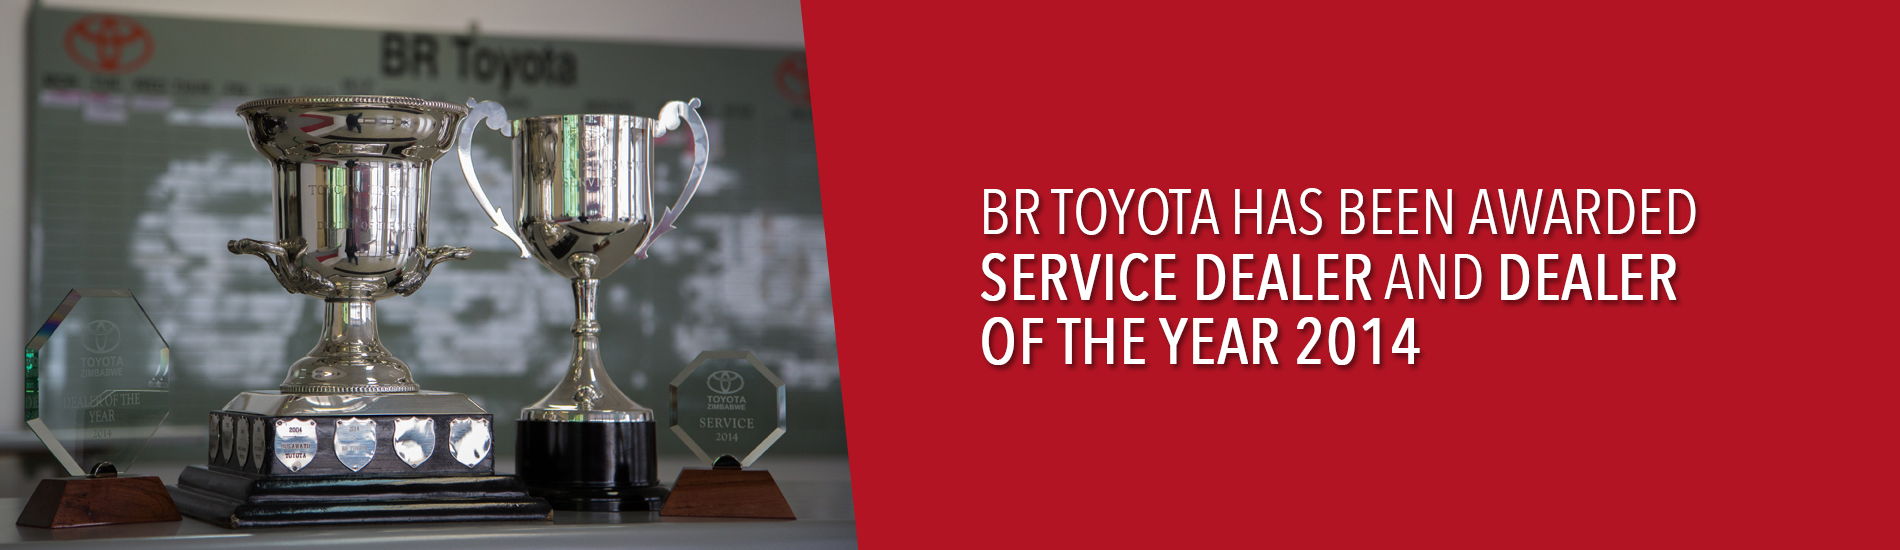 BR TOYOTA HAS BEEN AWARDED SERVICE DEALER AND DEALER OF THE YEAR 2014